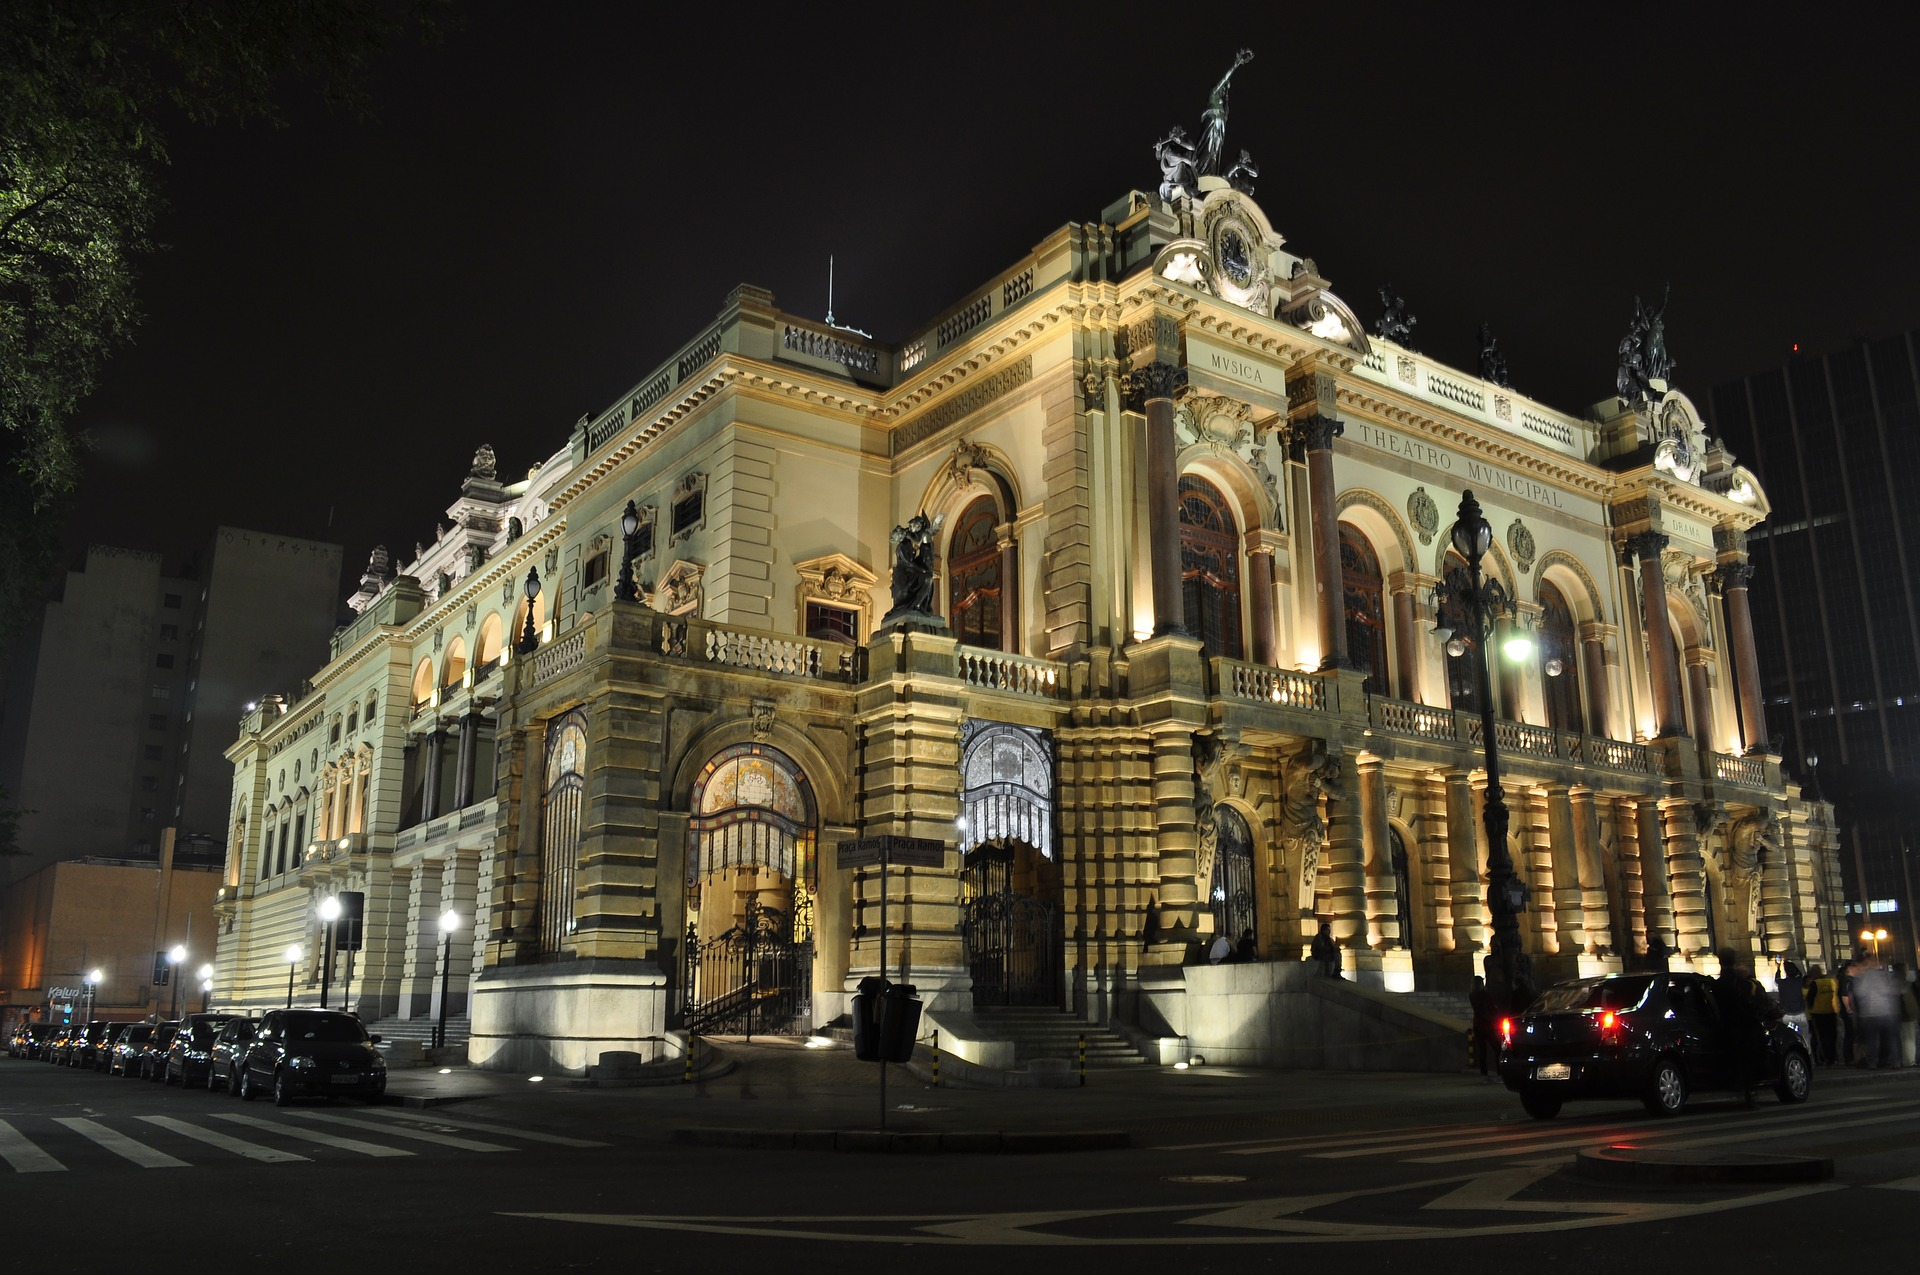 Municipal theater in Sao Paulo at night time.